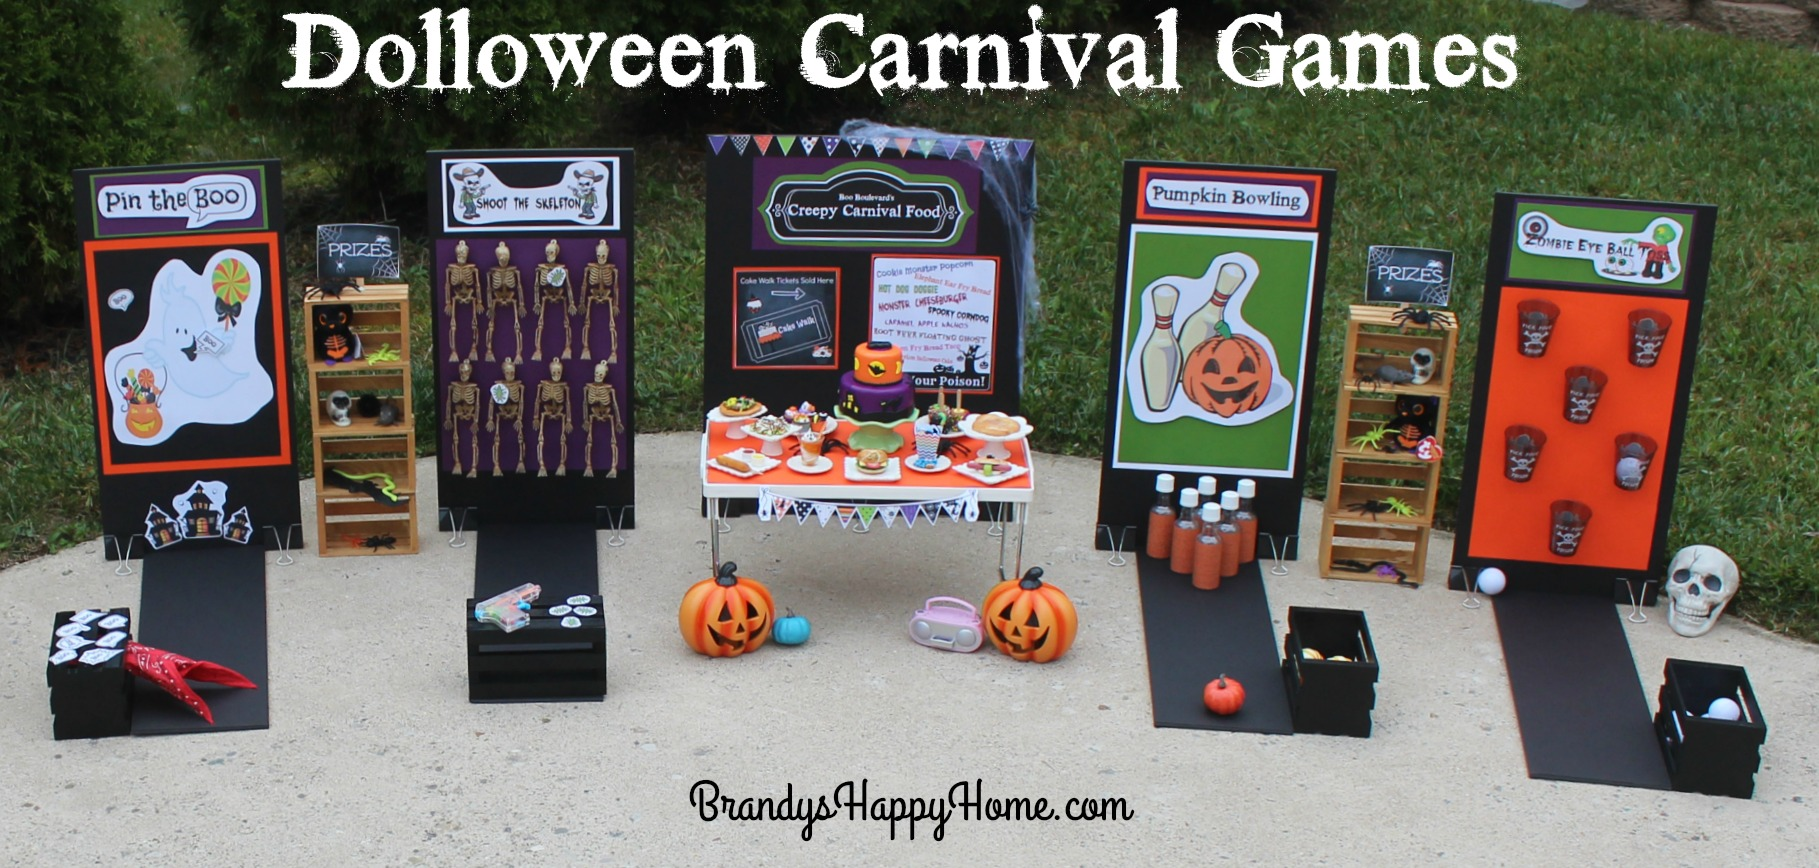 dolloween carnival part 2 carnival games